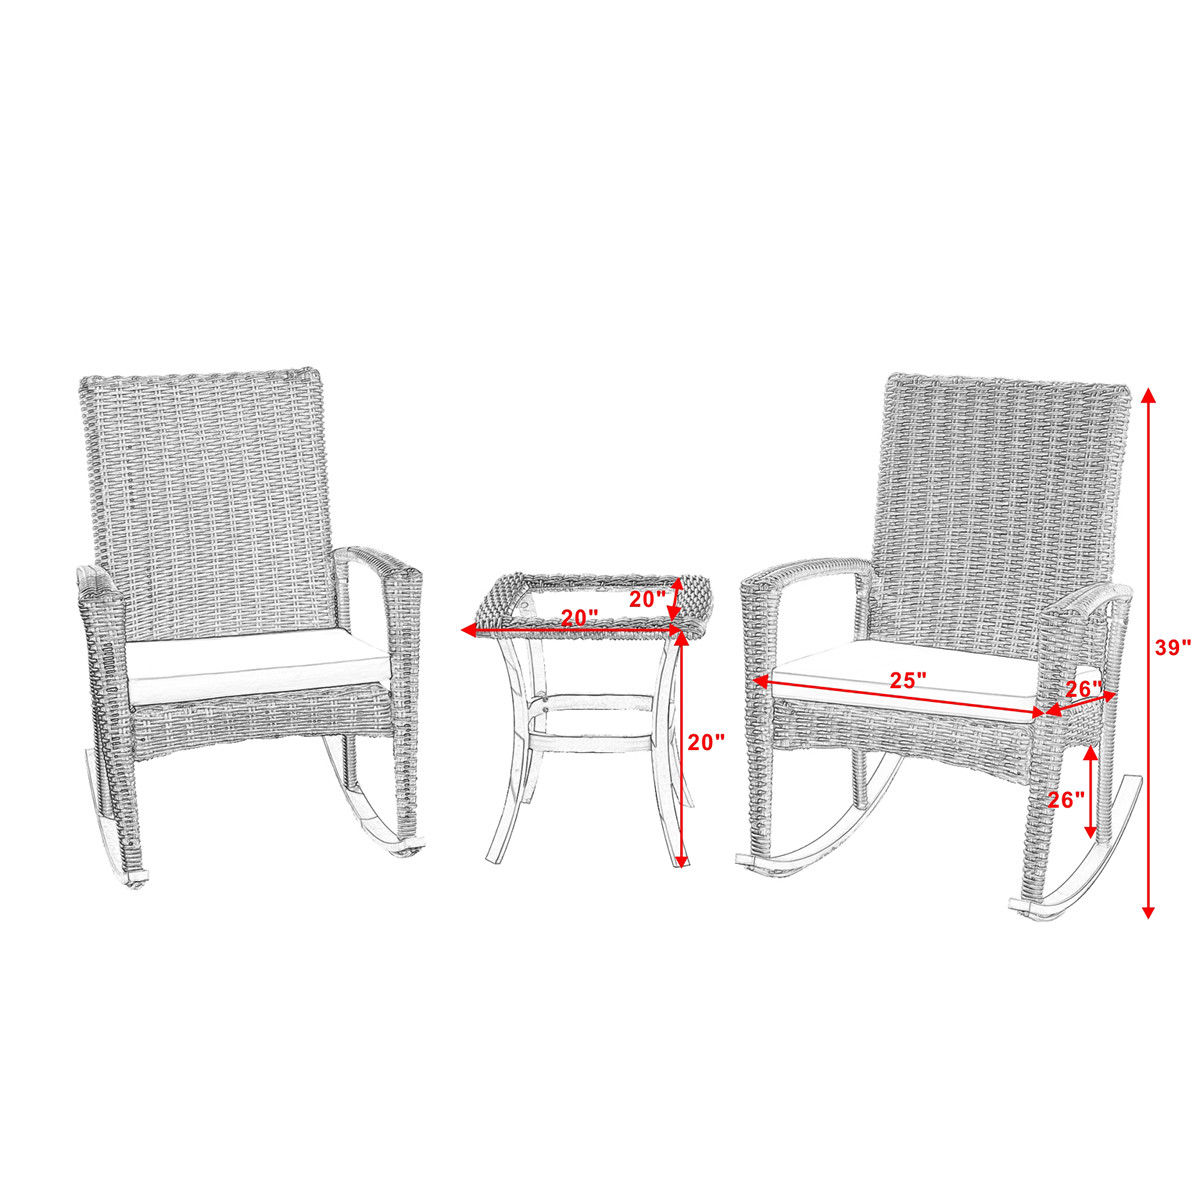 Gymax 3PC Patio Rattan Wicker Furniture Set Cushioned Outdoor Garden - image 7 of 8